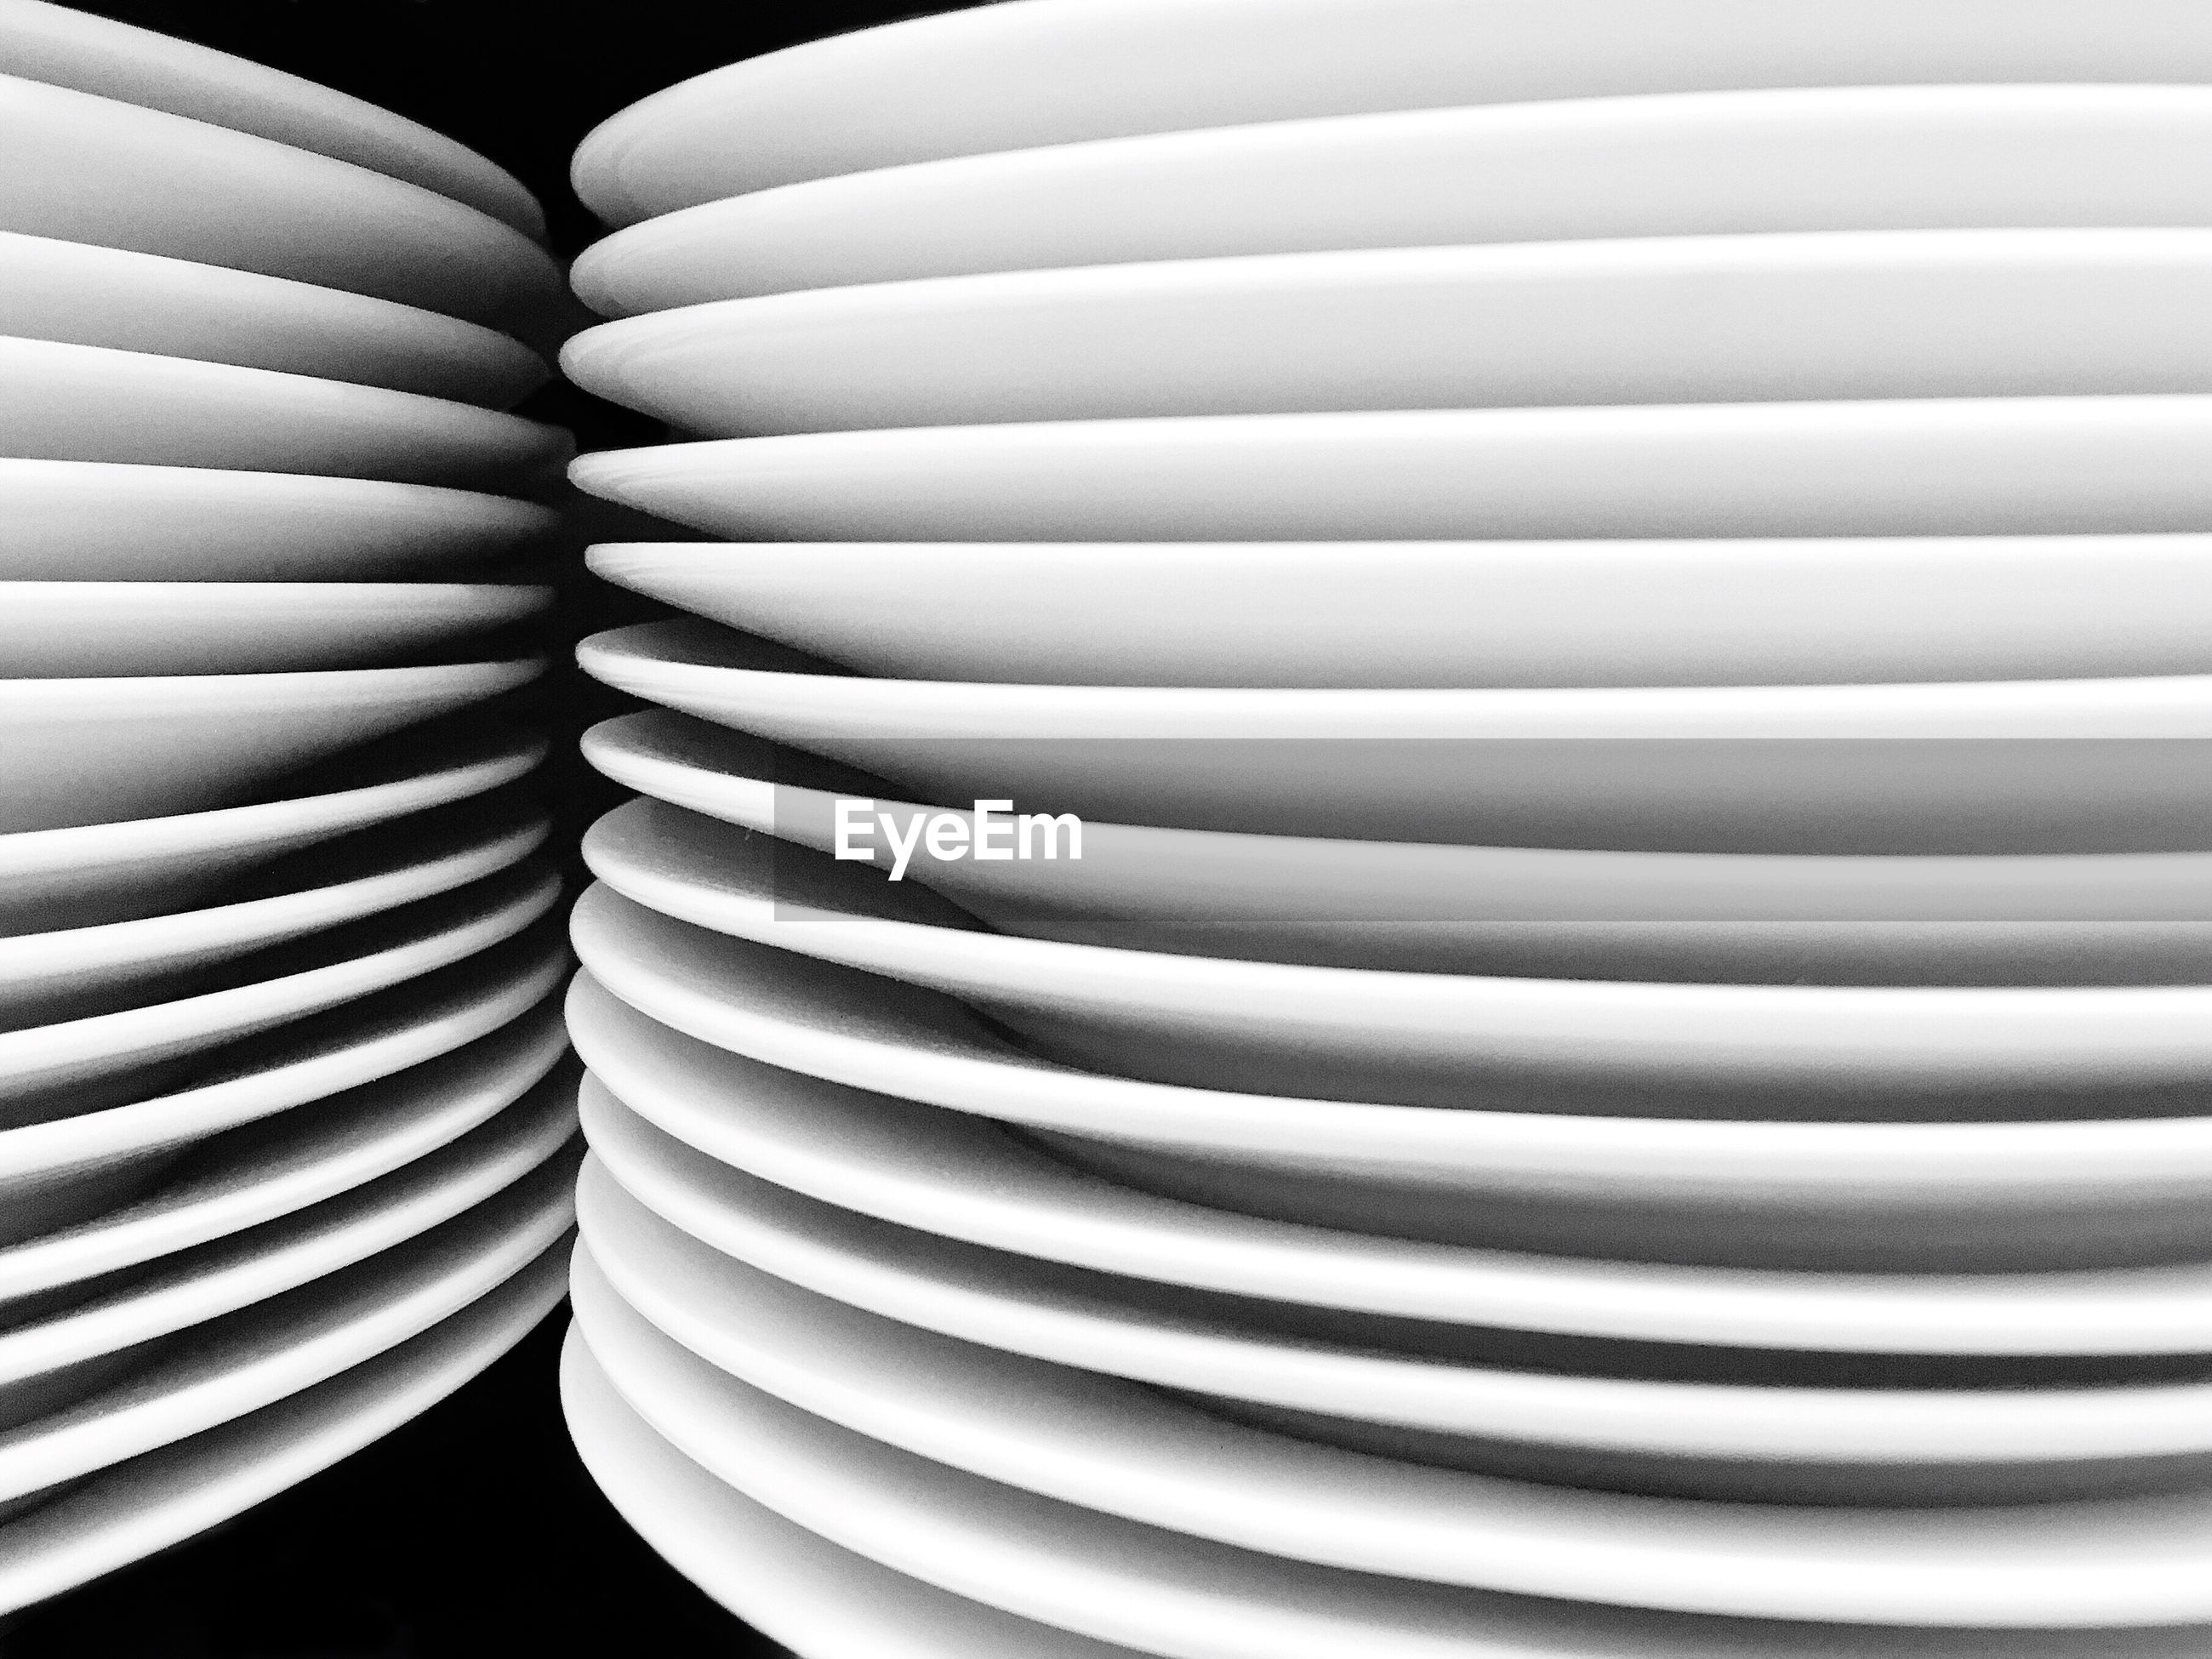 Stack of plates against black background